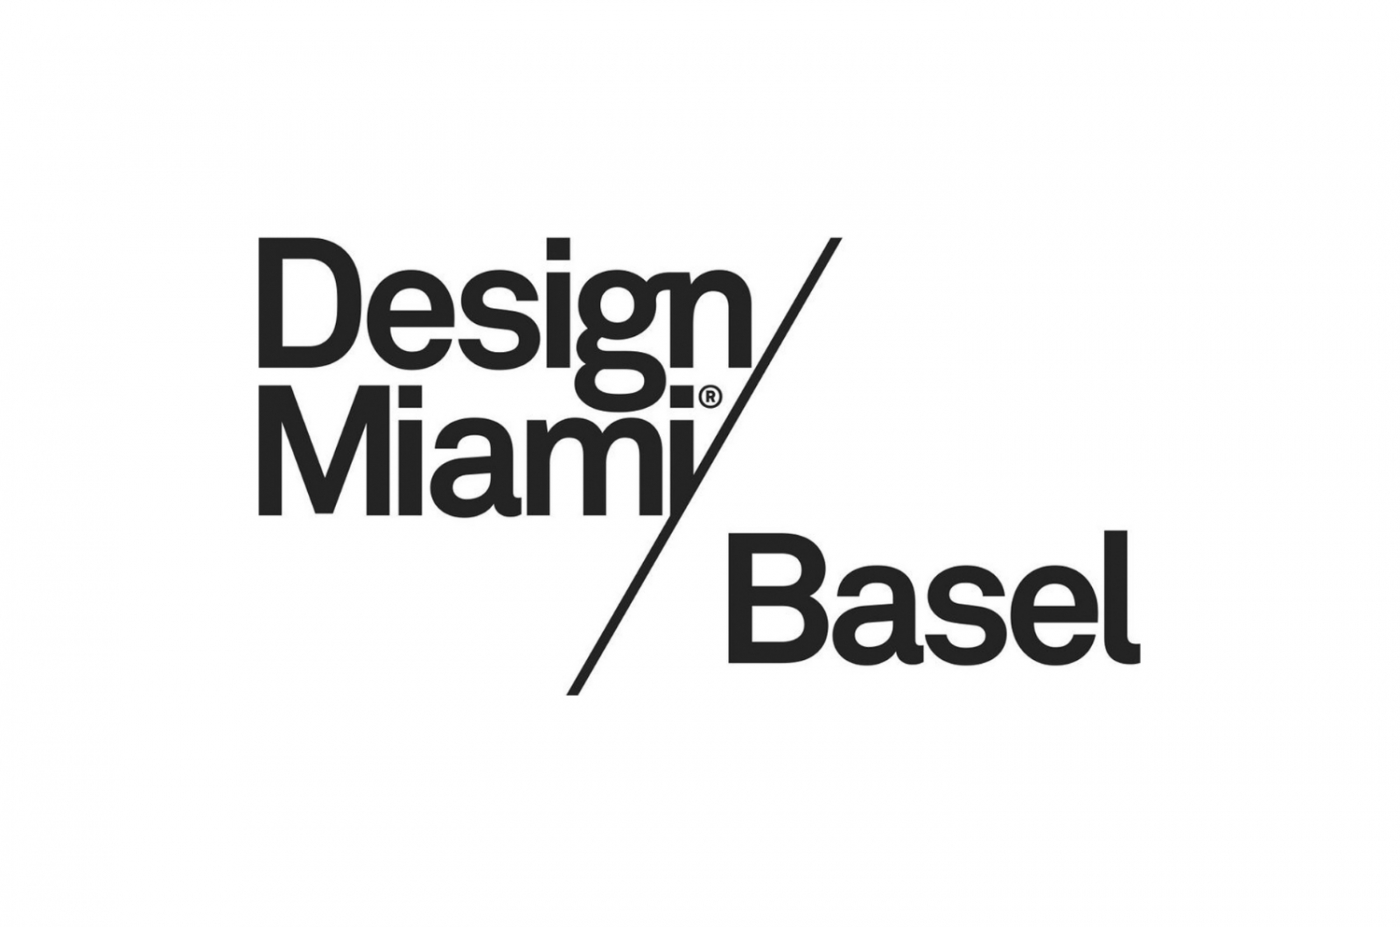 design miami Design Miami/Basel 2019 –  Everything About Its First Days' Highlights design miami 1400x927